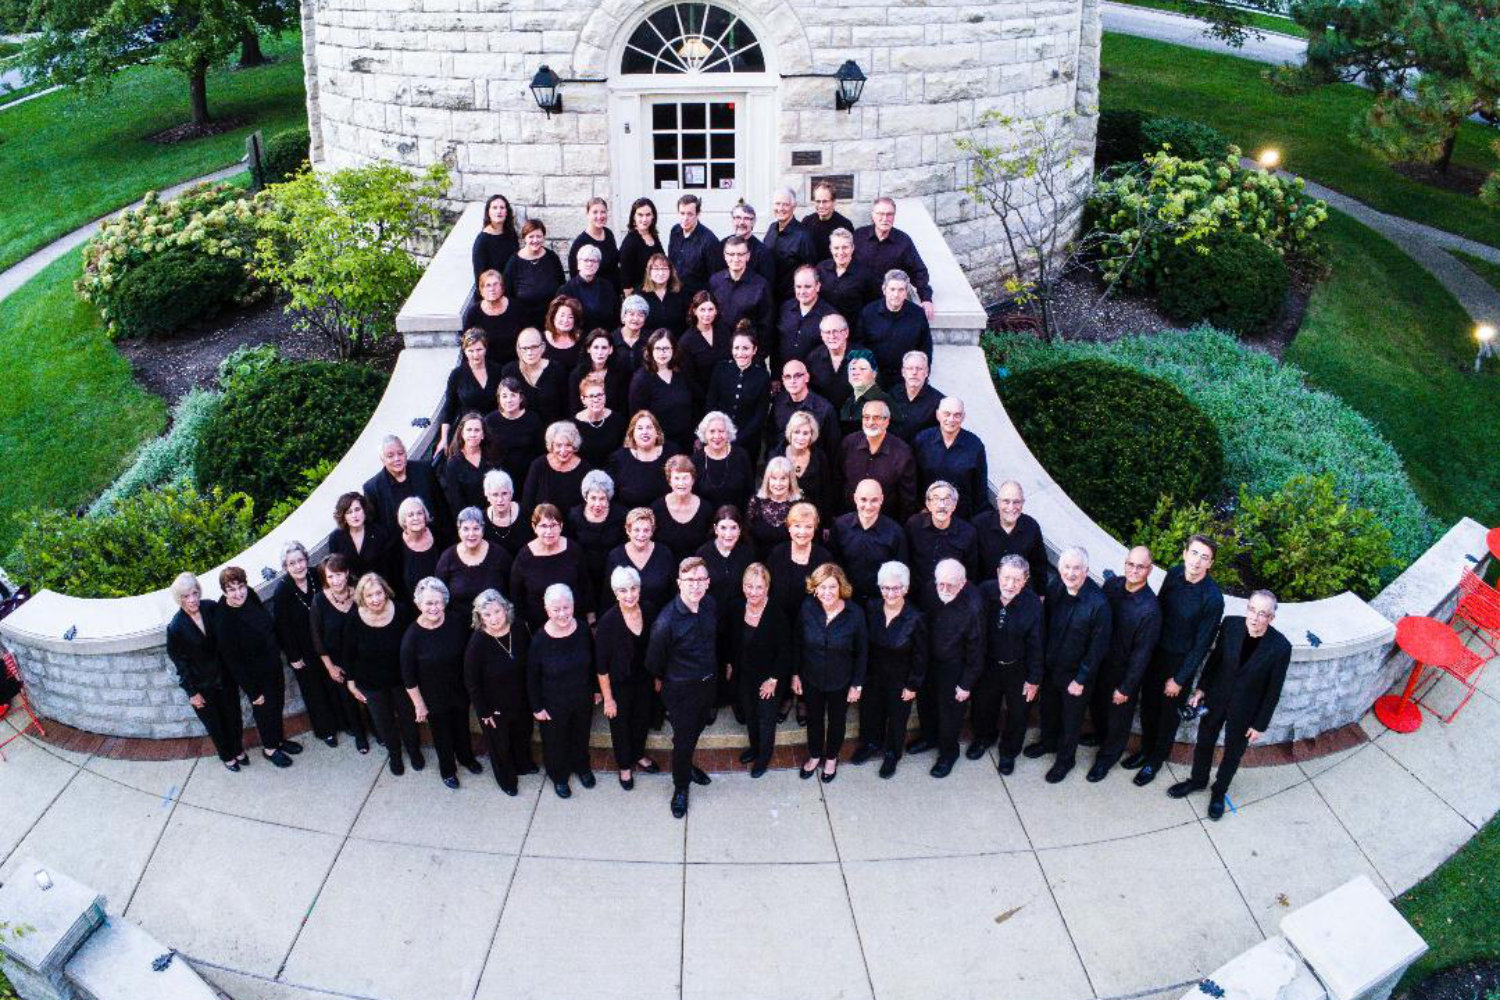 The Tower Chorale group photo taken by a drone